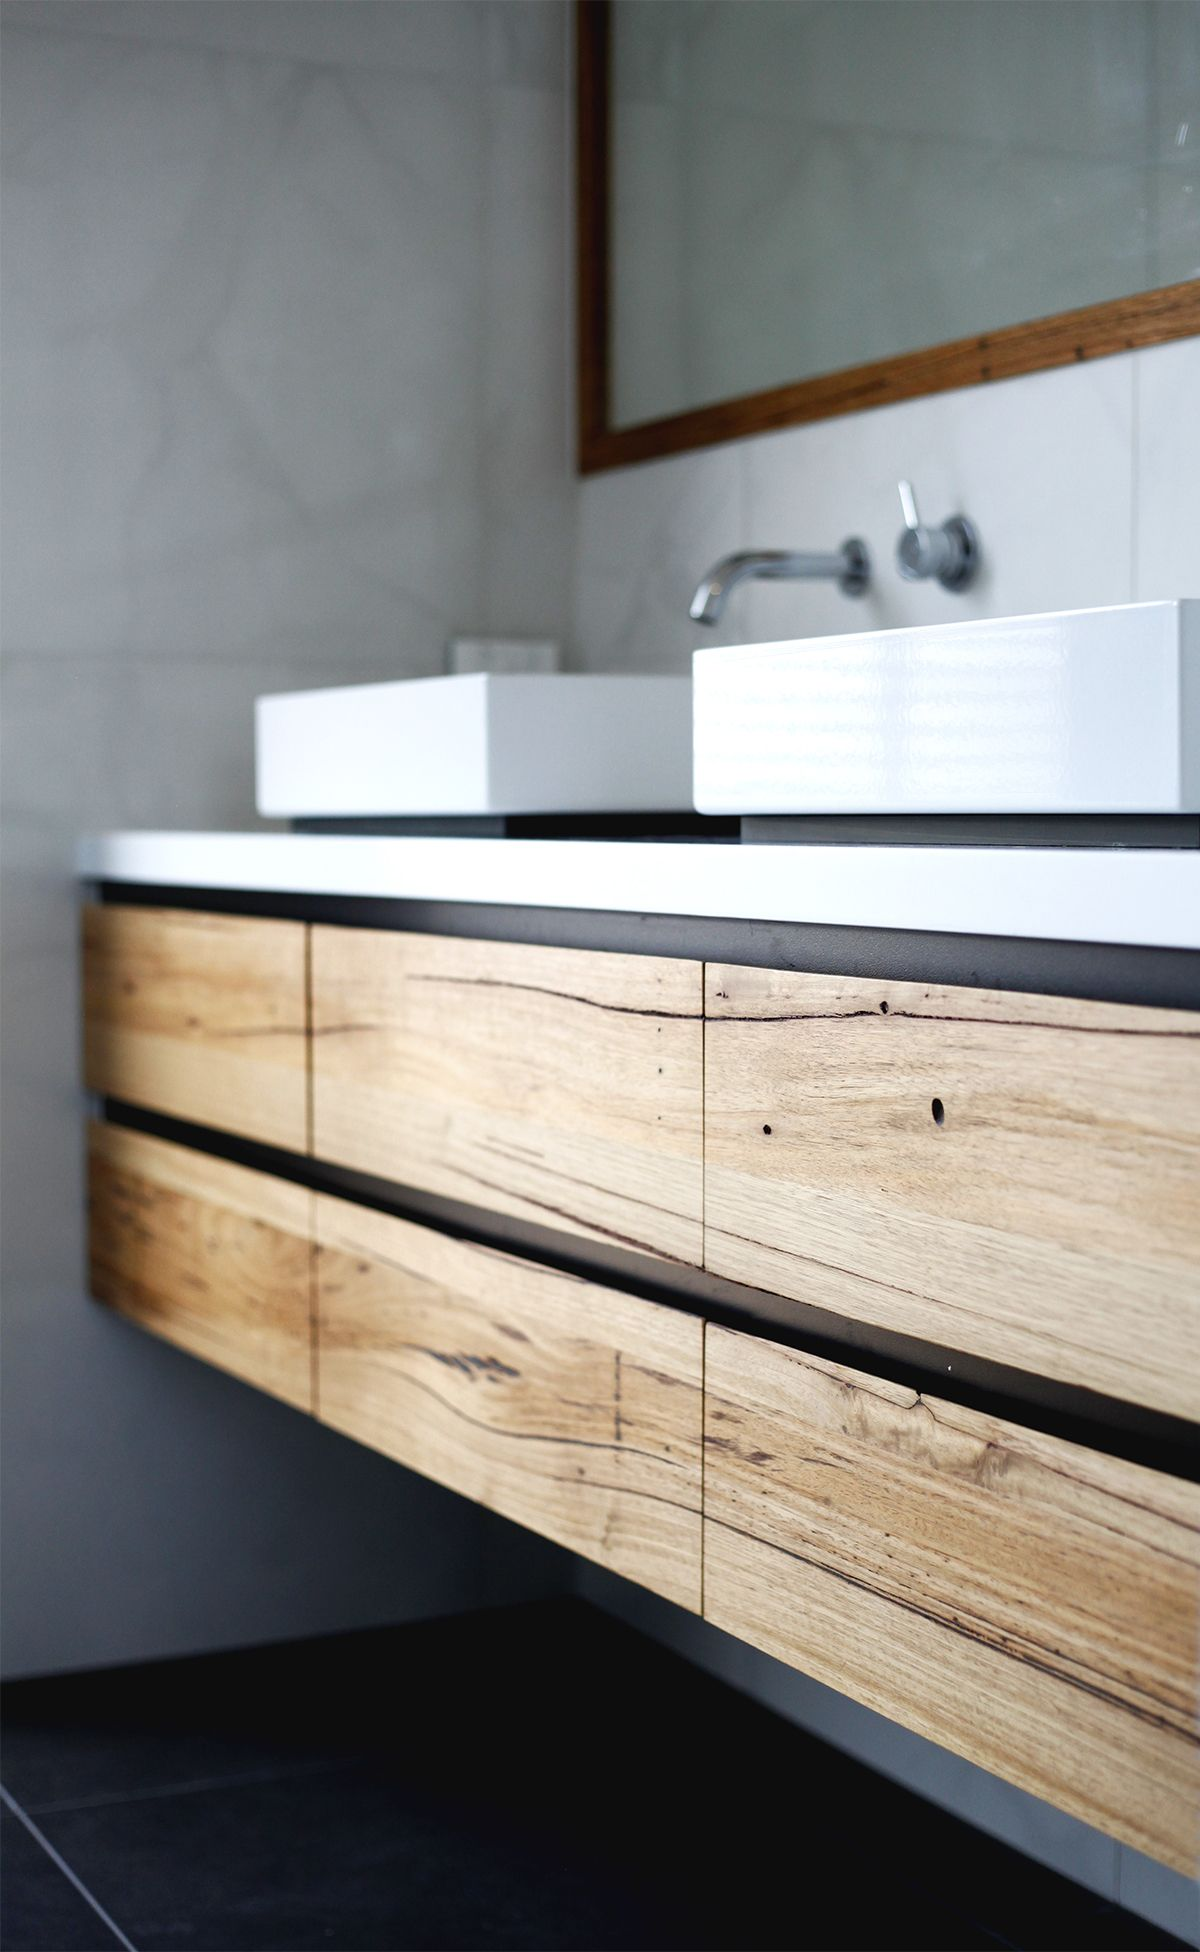 Recycled Timber Vanity Melbourne Stone And Timber Bathroom Vanity The Tathra Features A